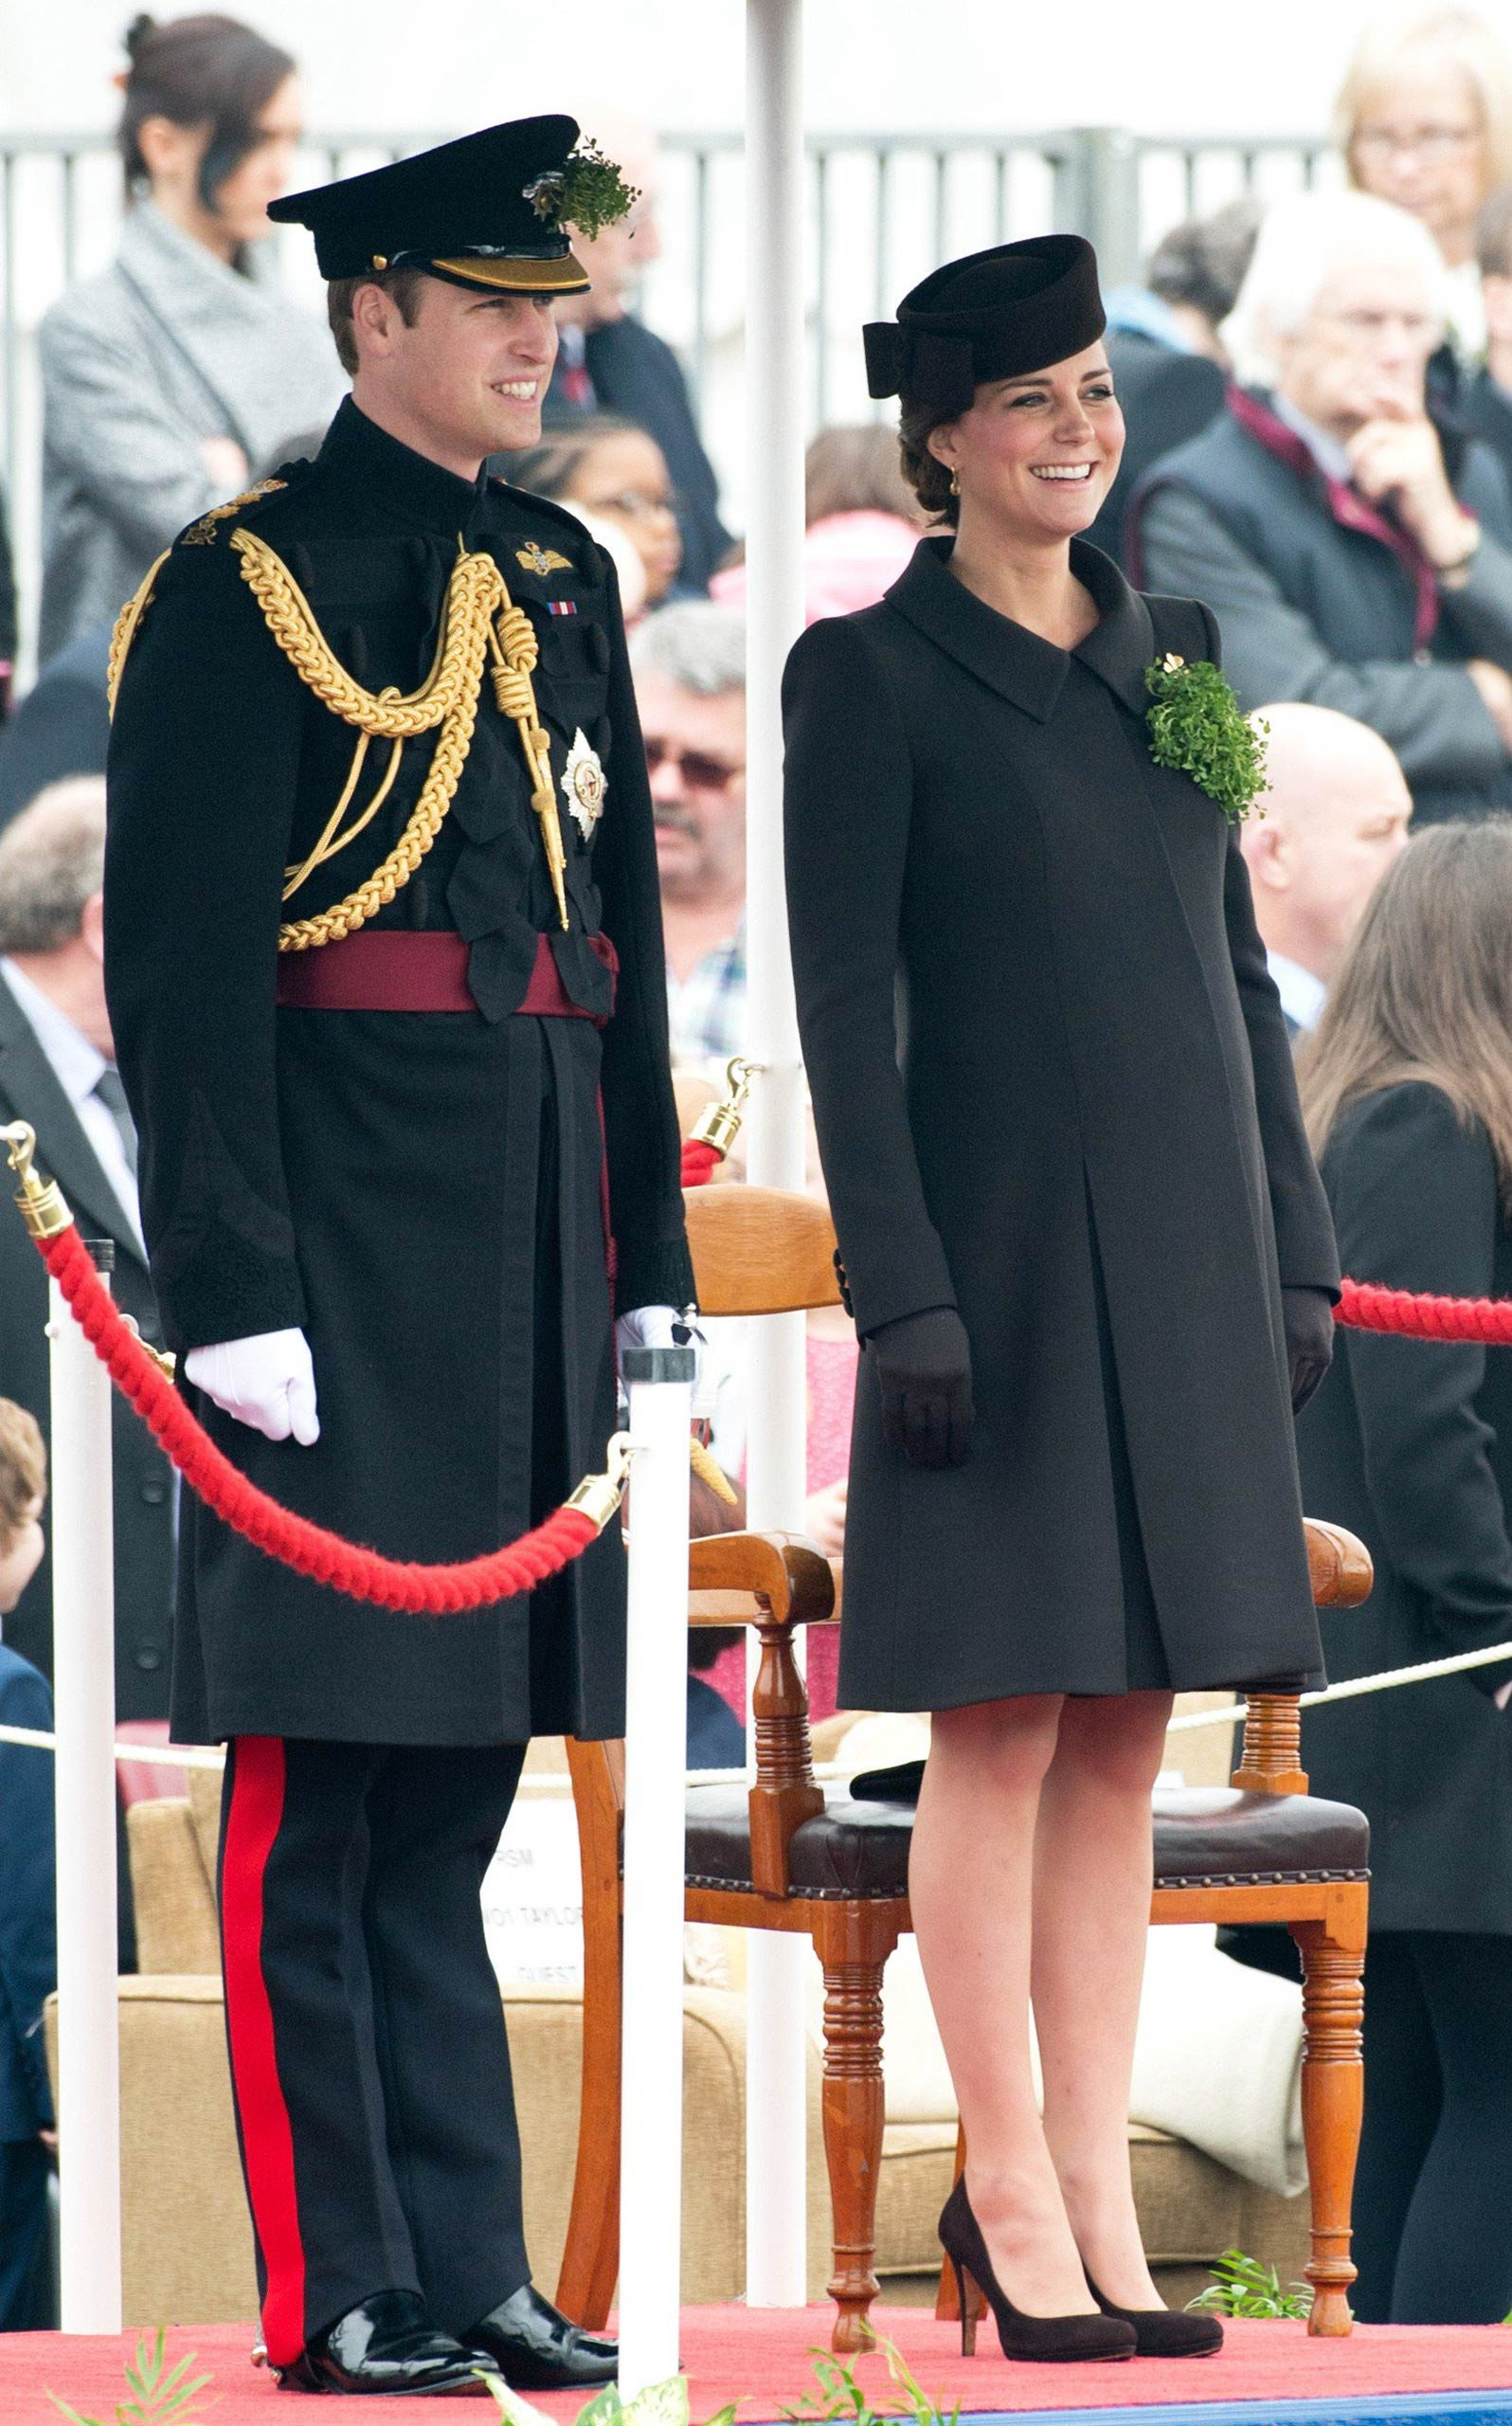 Prince William, Duke of Cambridge and Catherine, Duchess of Cambridge, wearing a bespoke Catherine Walker coat, attends the Irish Guards' St. Patrick's Day Parade at Mons Barracks in Aldershot, England on March 17, 2015.